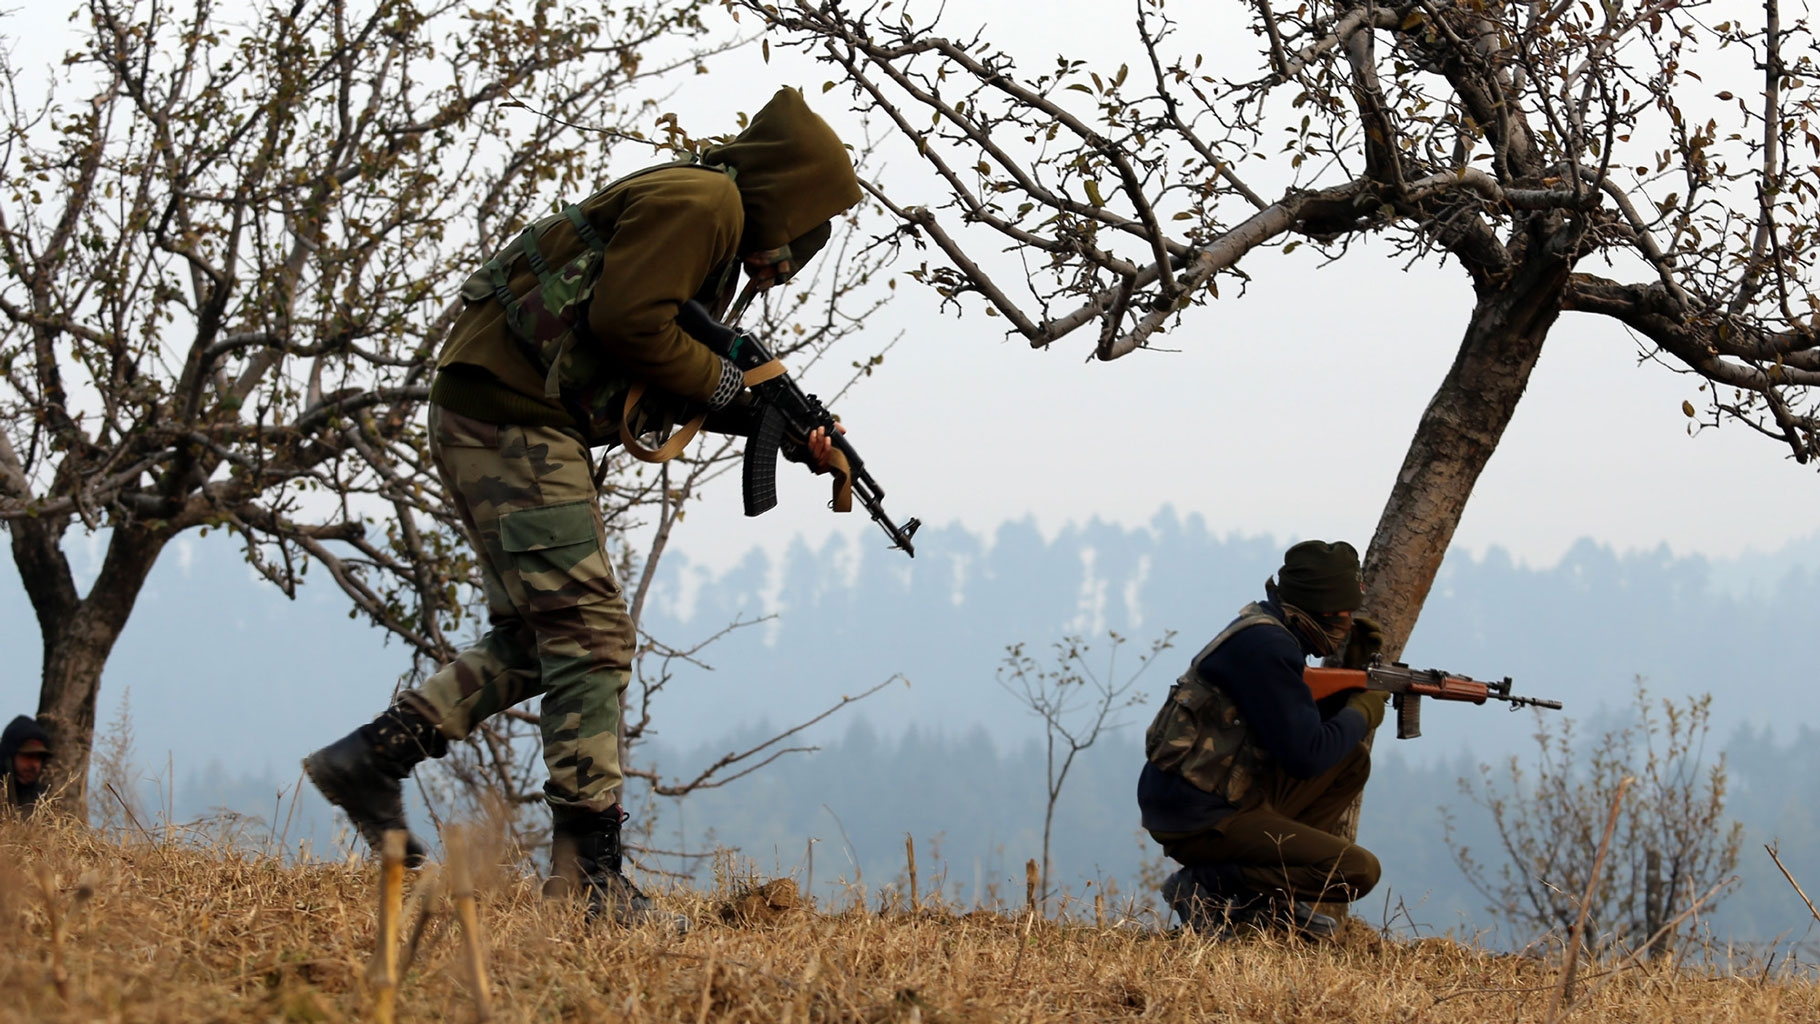 1 Dead After Terrorists Shoot at 2 Apple Traders in J&K's Shopian